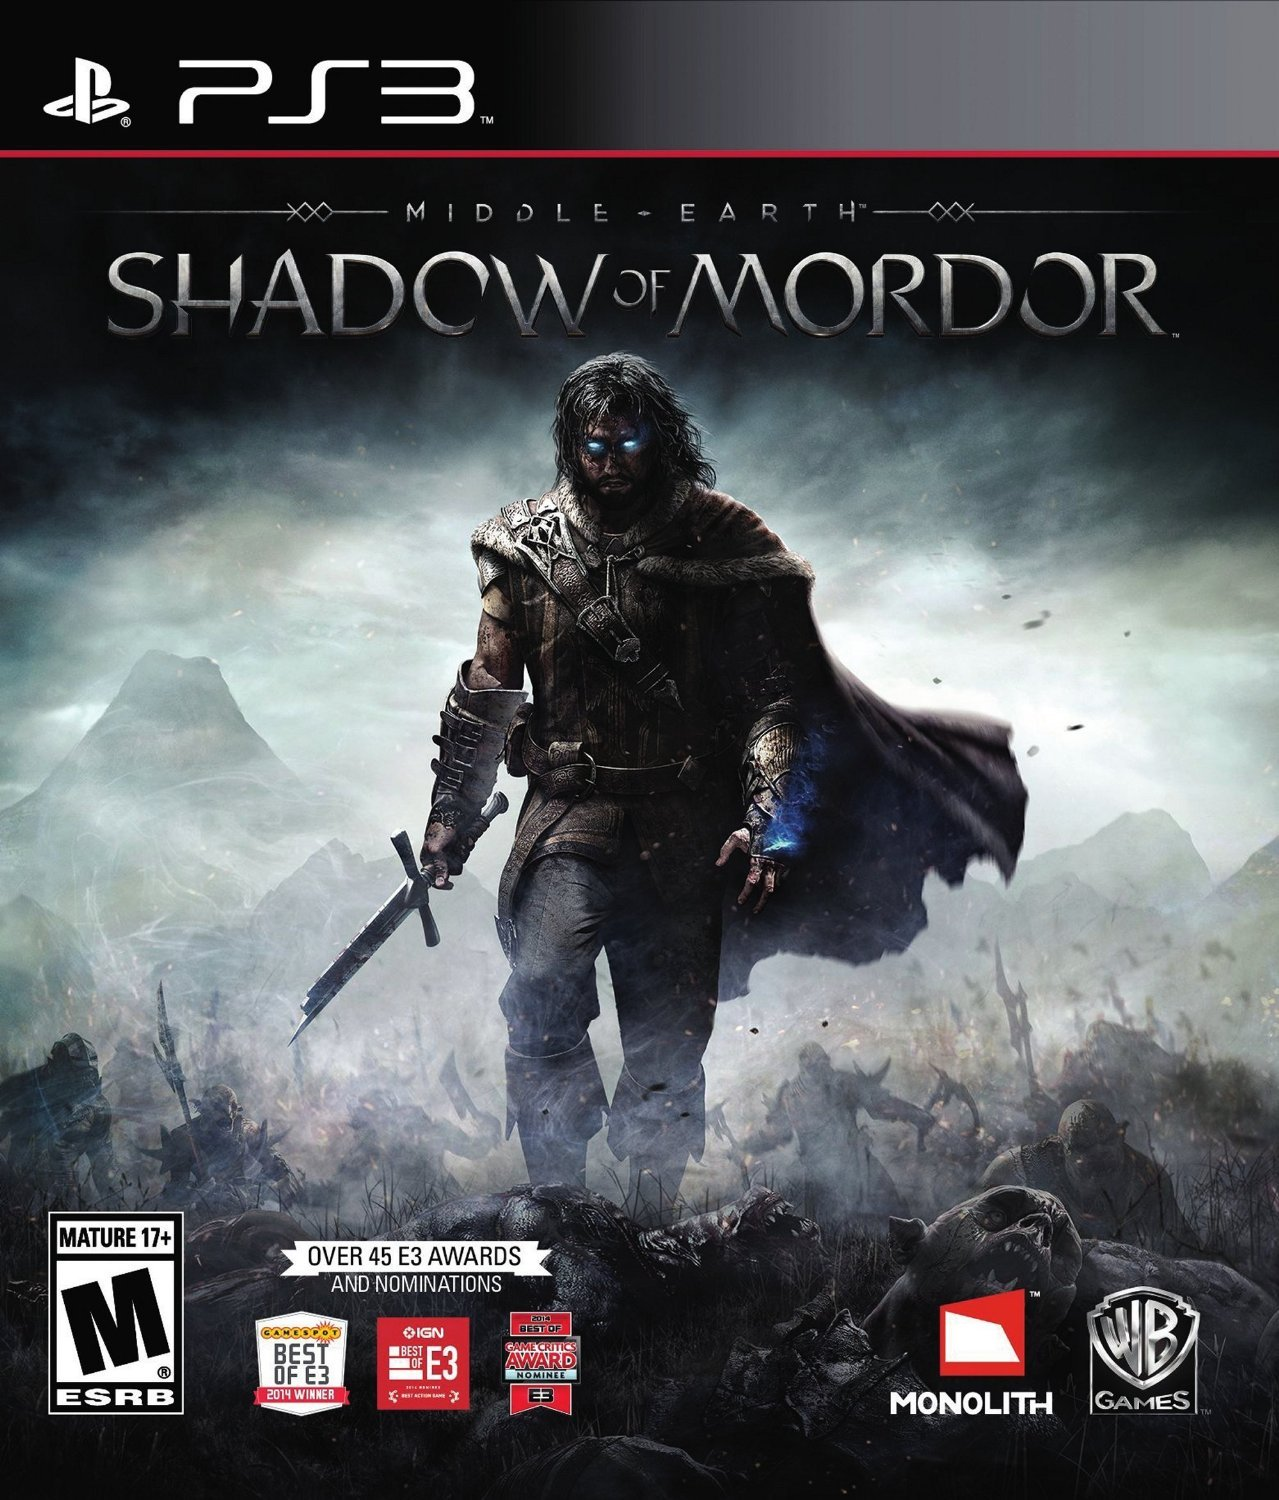 Middle Earth: Shadow of Mordor PS3 Physical Game Disc US